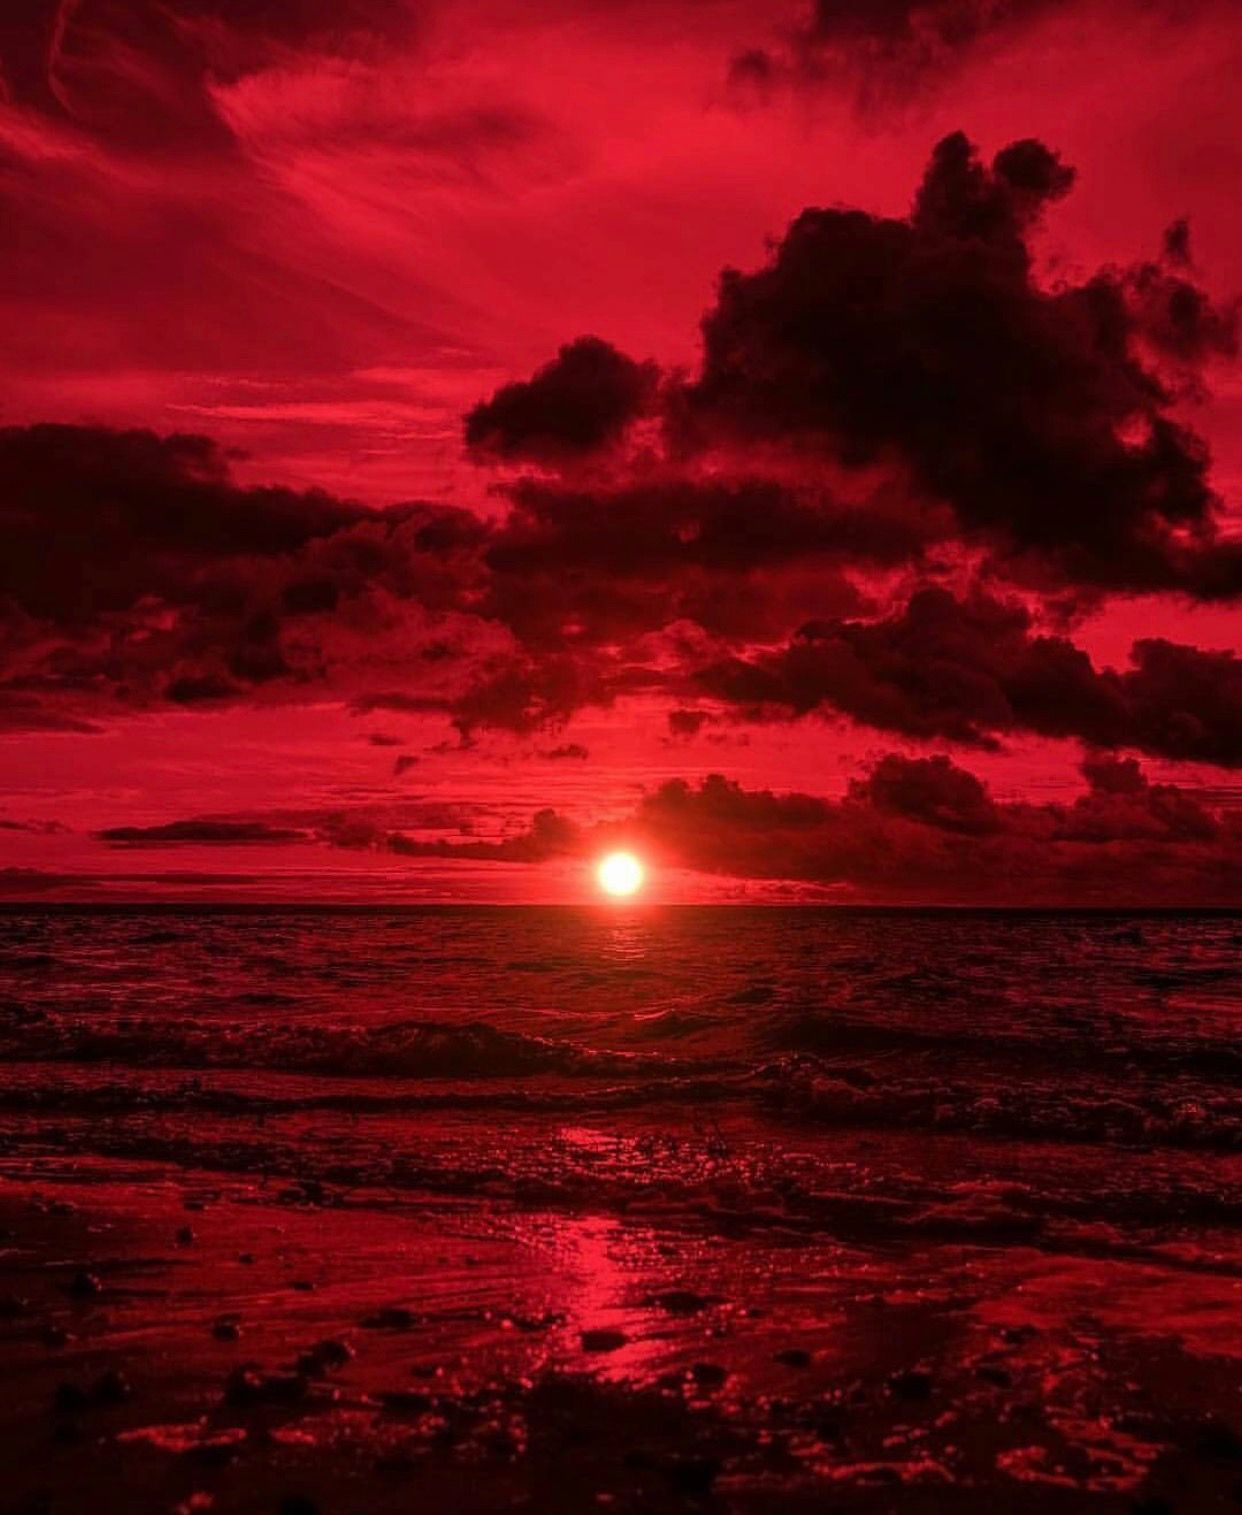 Red Aesthetic Scenic Wallpapers - Top Free Red Aesthetic ...